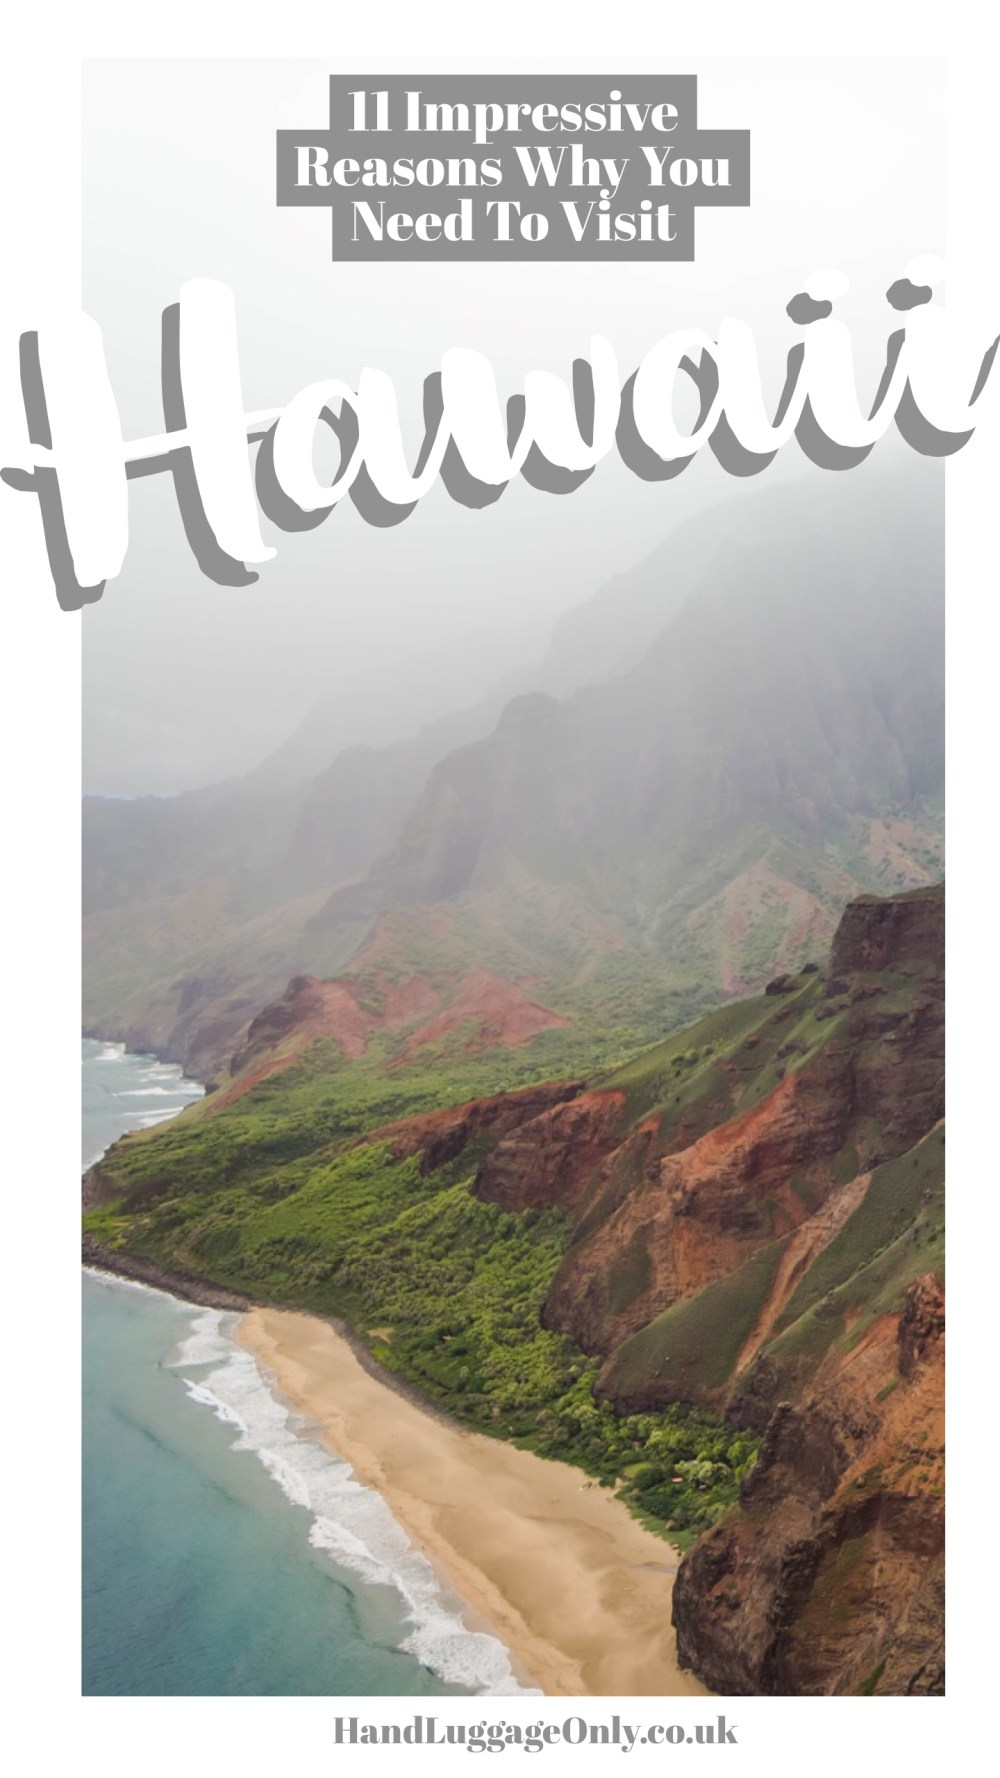 11 Really Impressive Reasons Why You Need To Visit Hawaii (1)